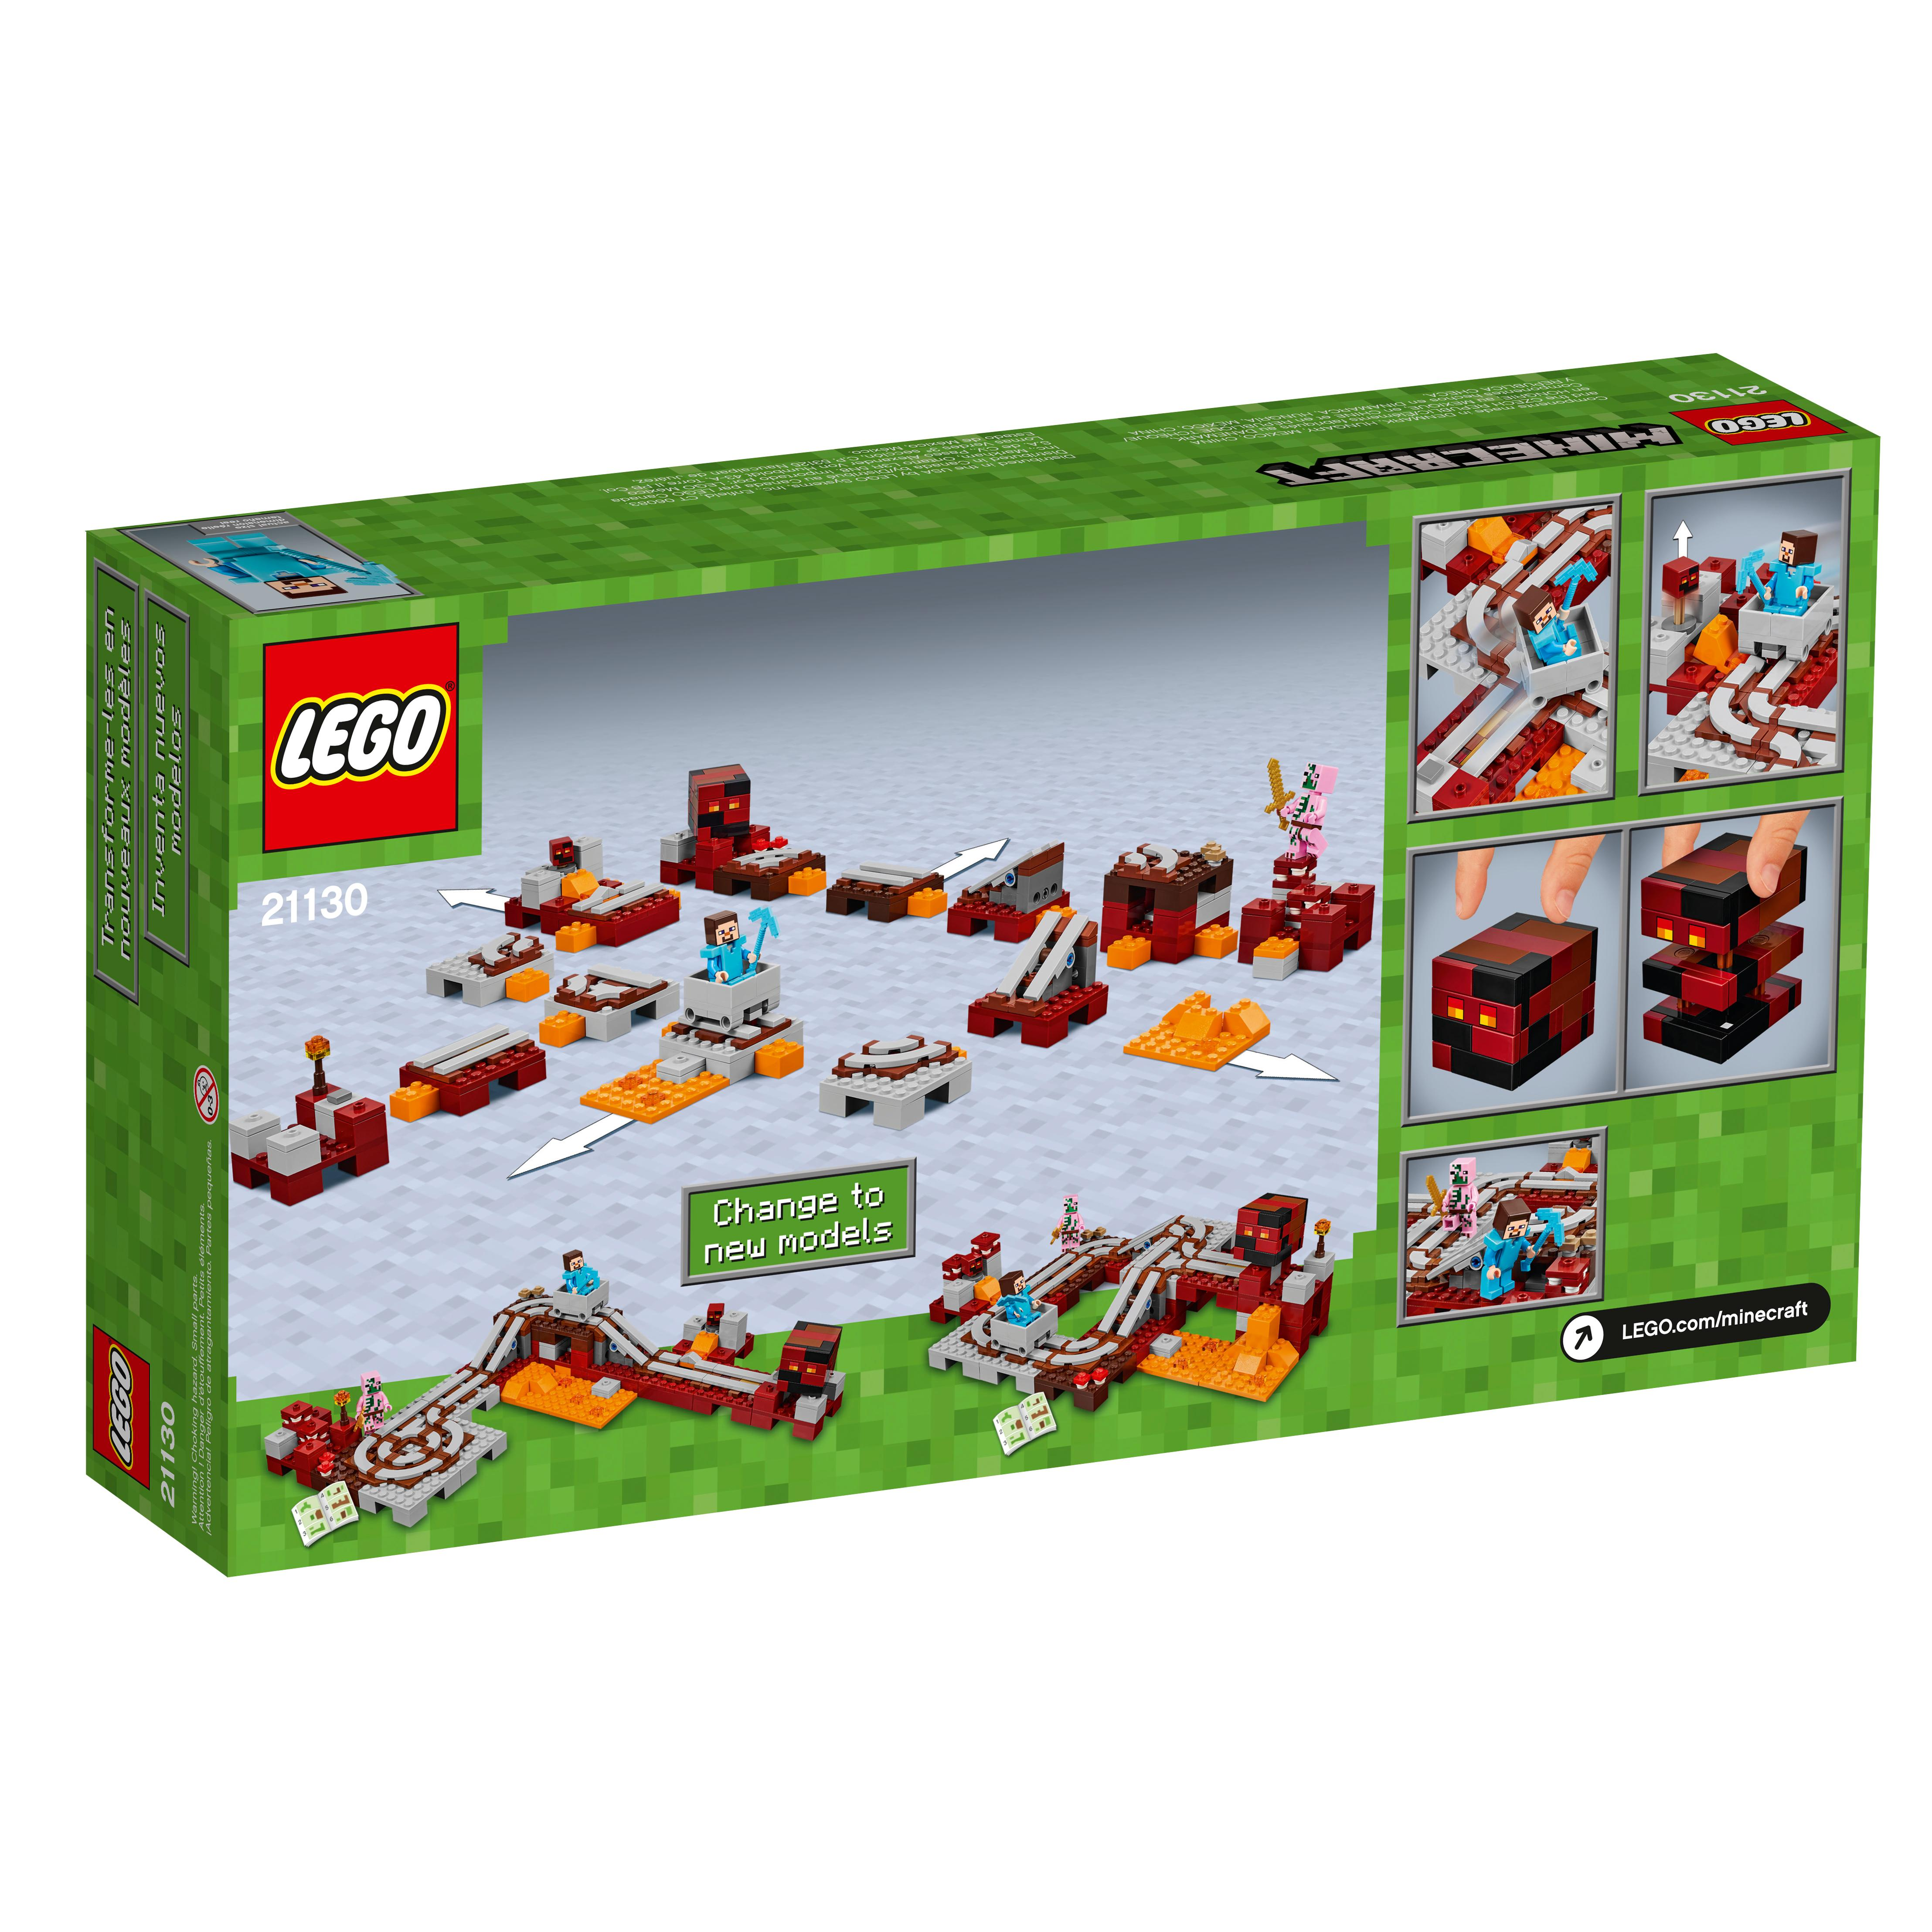 Lego Minecraft The Nether Railway View Larger 21133 Witch Hut Toys Books Story Mode Mindcraft Book Diary Of A Mi